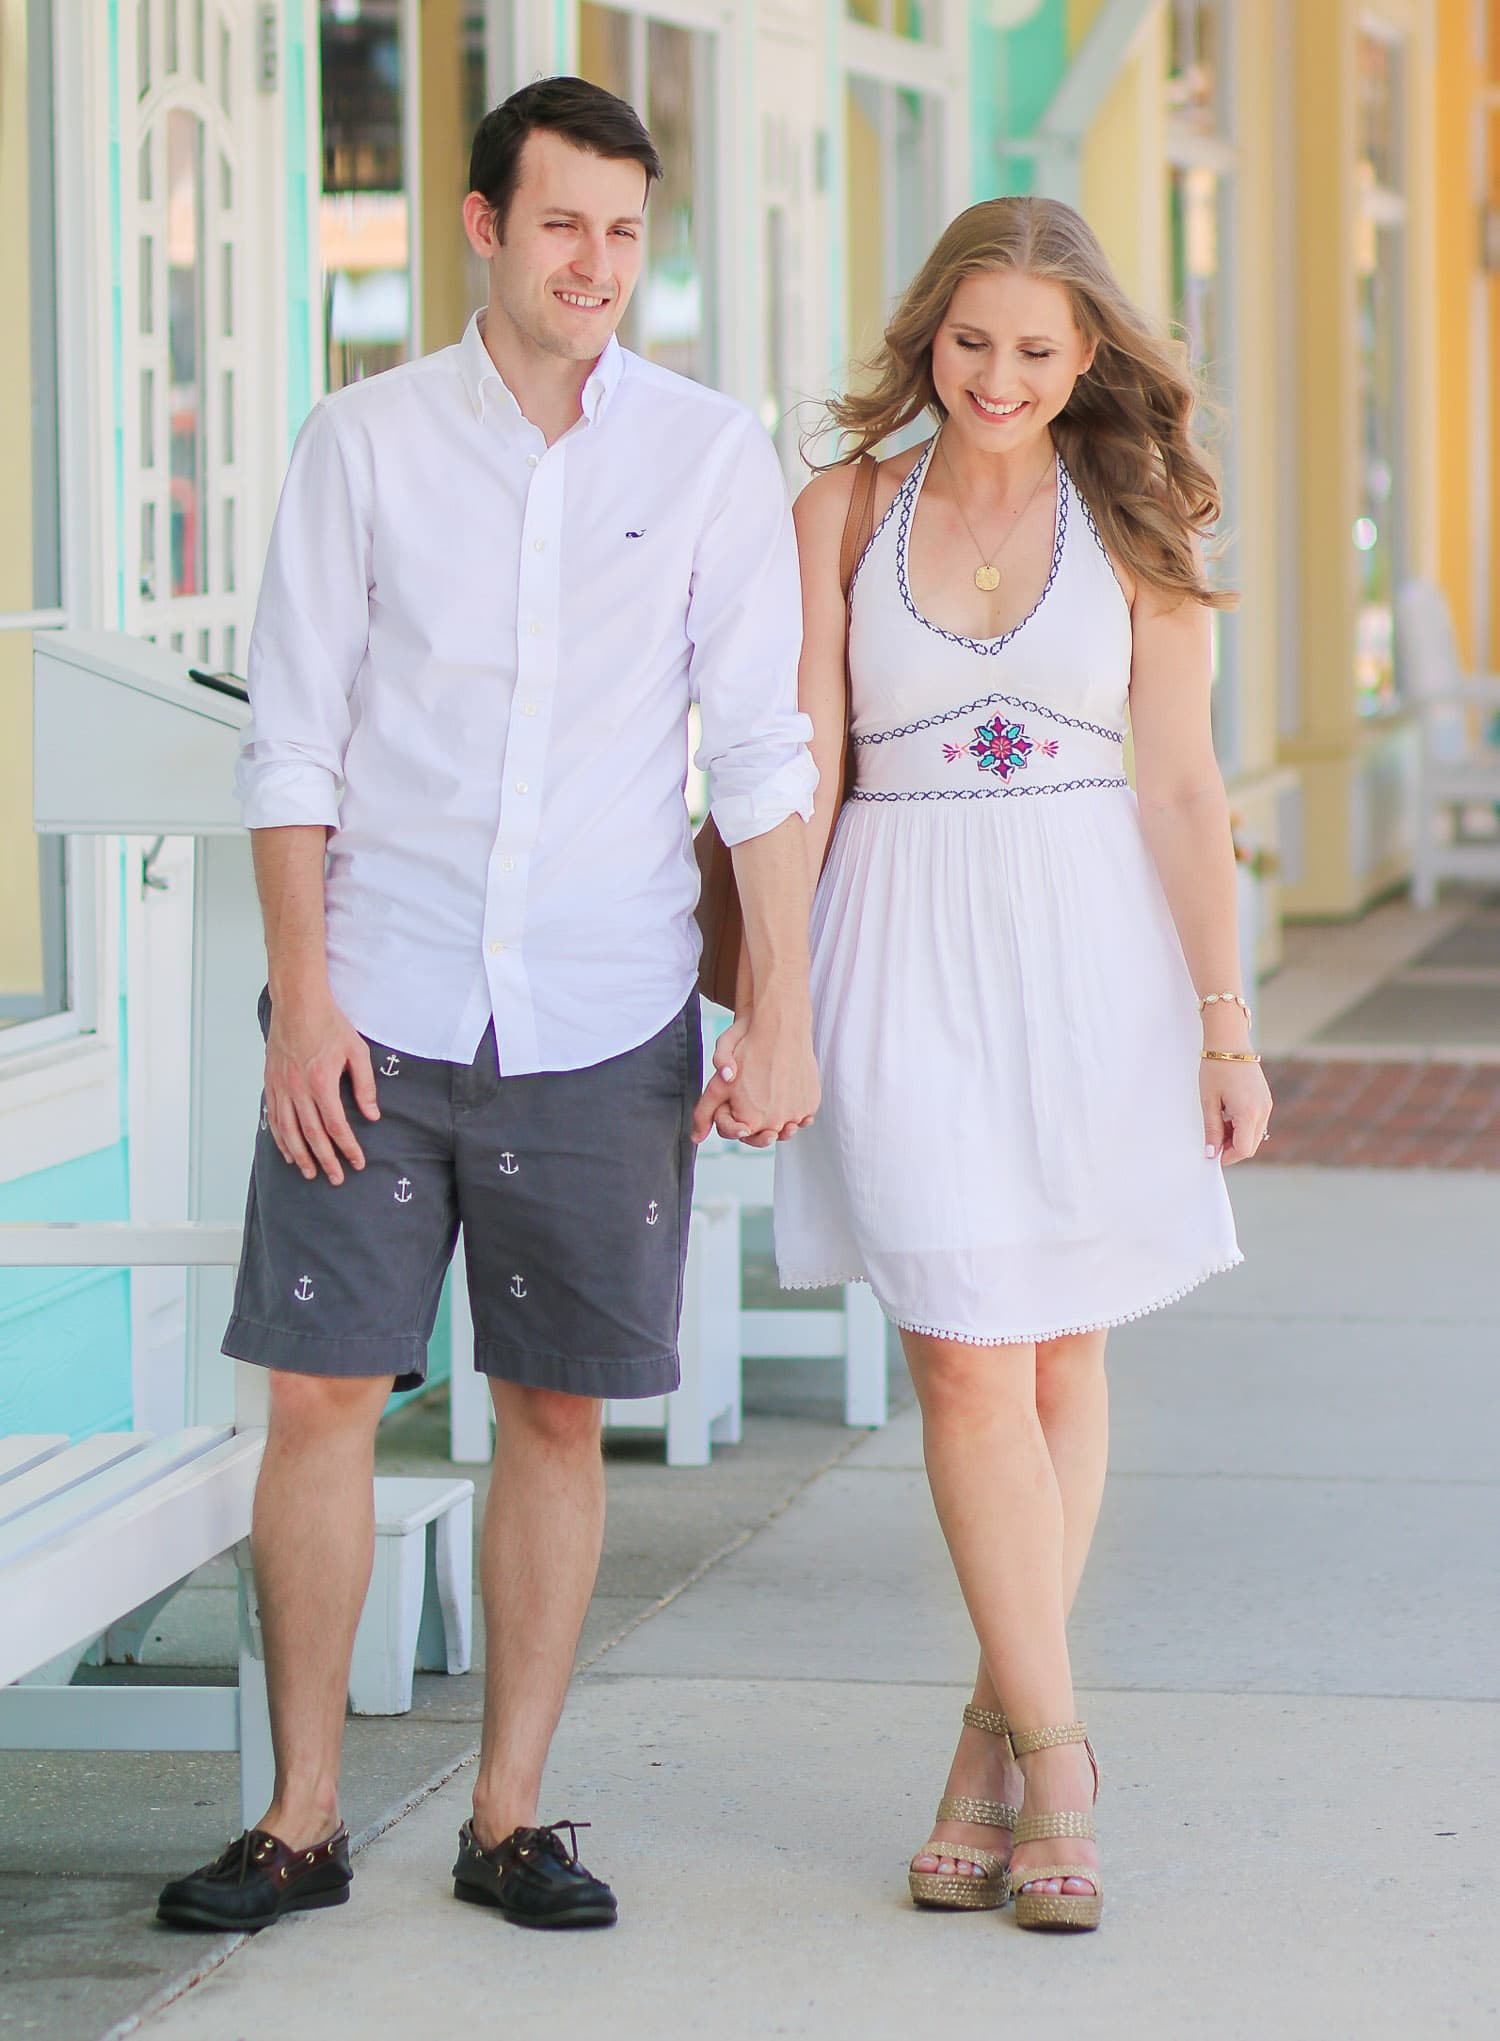 cute-affordable-date-night-outfit-idea-ashley-brooke-nicholas-1547